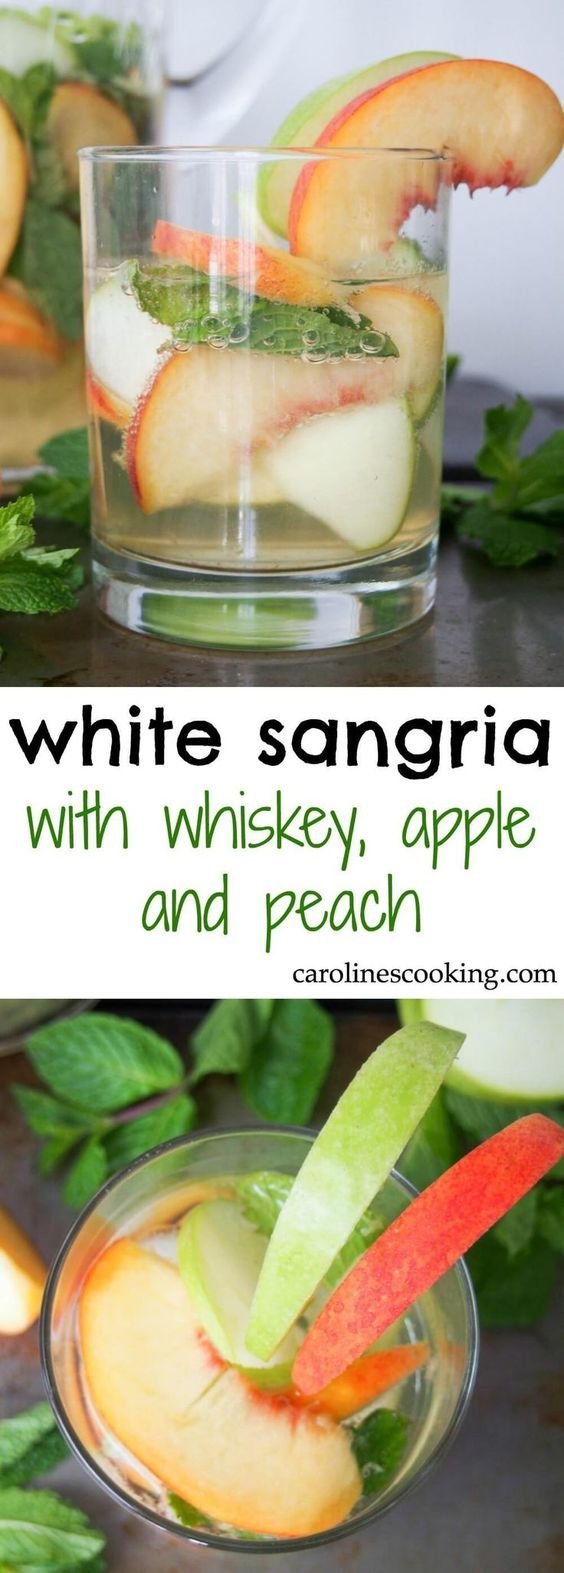 white sangria with whiskey, apple and peach - Gently sweet, fruity and with a lovely freshness from the mint, this white sangria is elegant and perfect for parties. IT'll become your go-to drink all summer! Also perfect colors for a less cliched St Patric